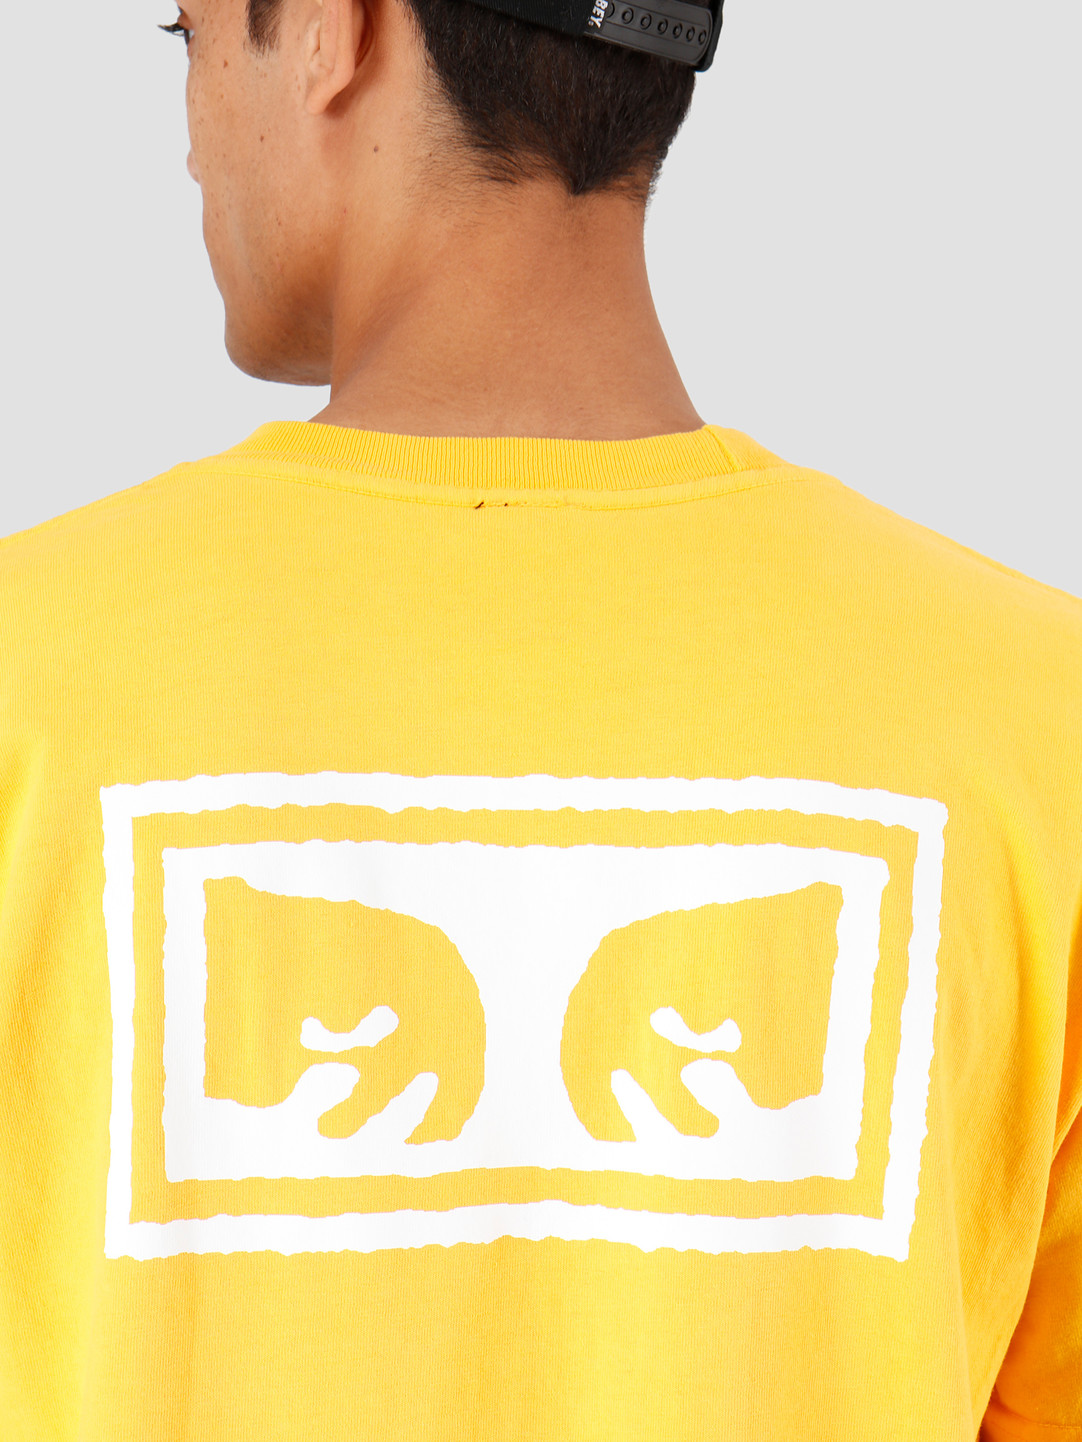 Obey Obey Eyes 3 Heavy Weight Classic Box T-Shirt Gold 166911826-GLD